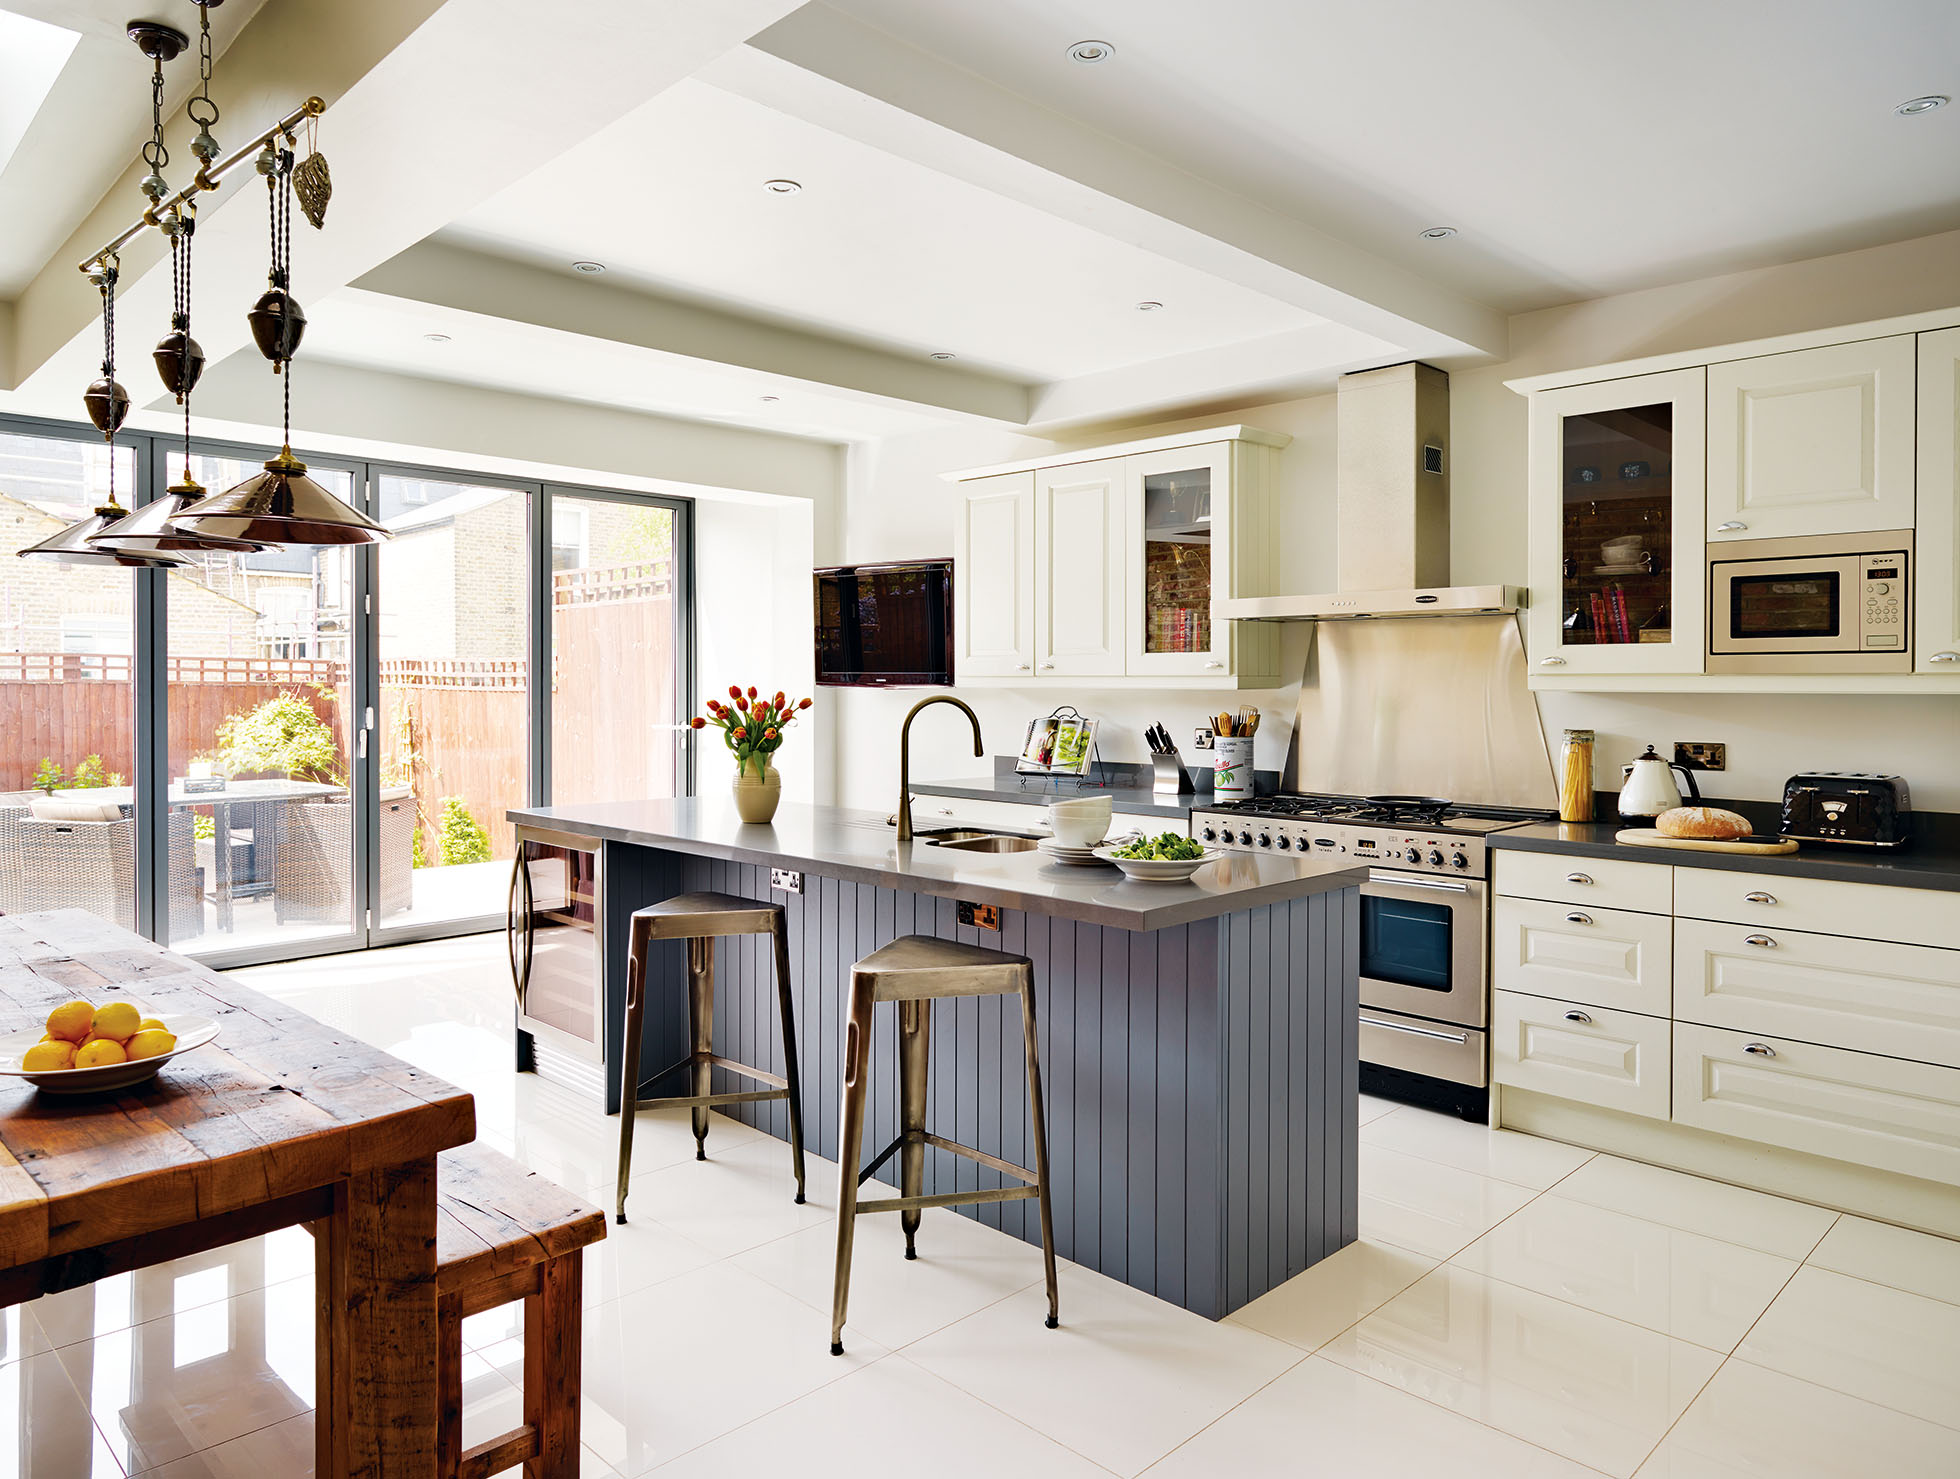 Converting two Victorian flats into a family home | Real Homes